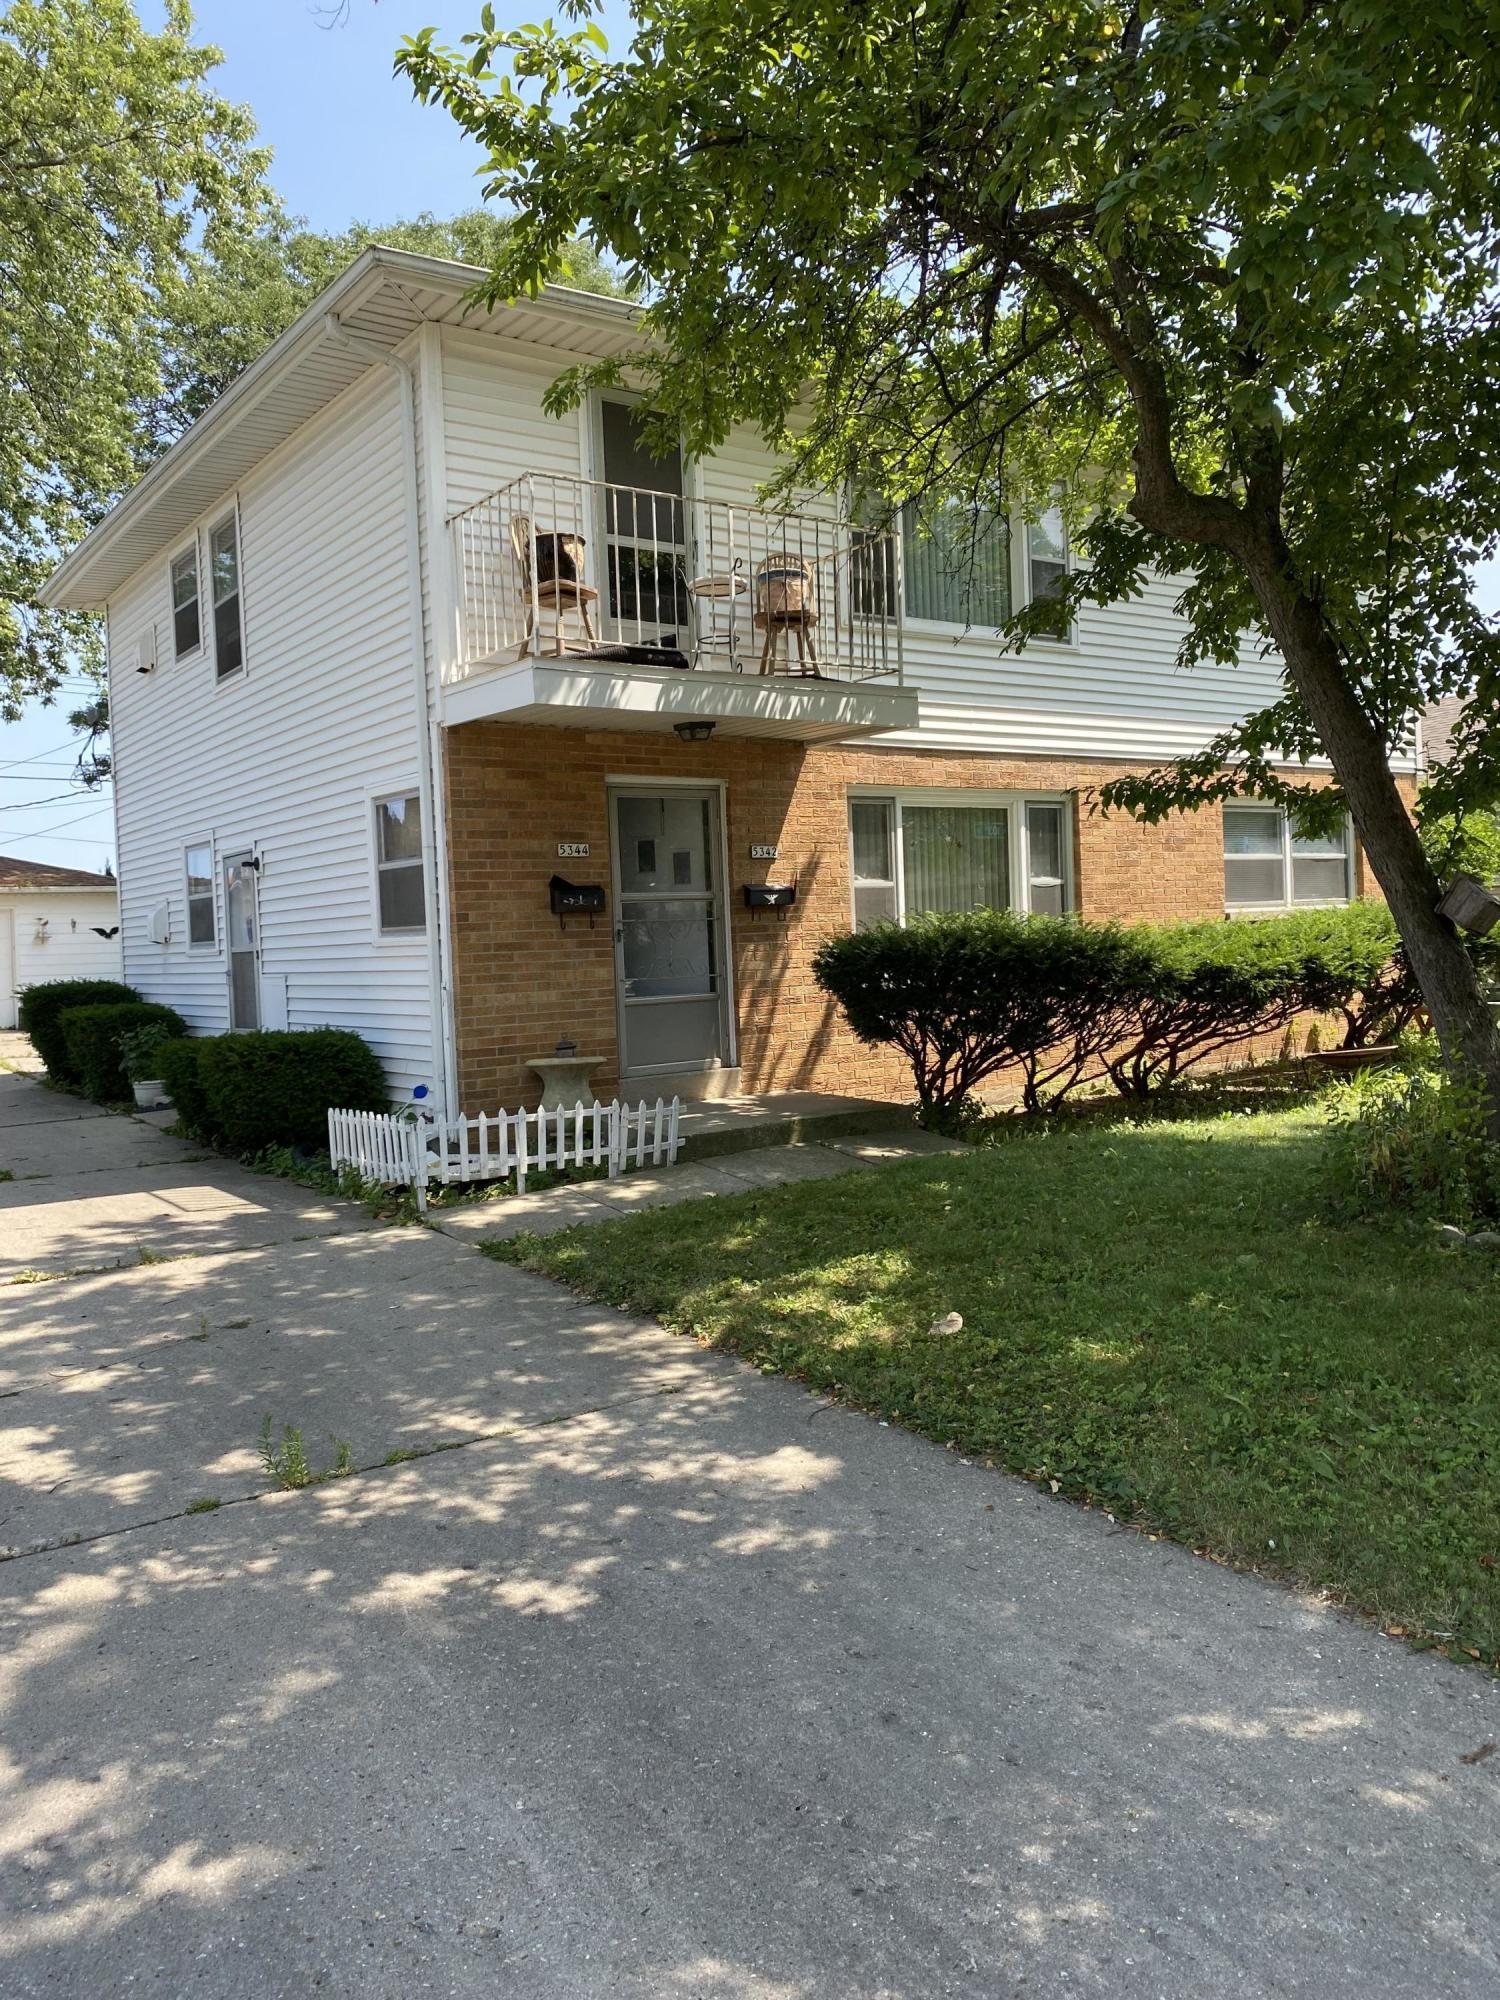 5342-5344 103rd St, Milwaukee, Wisconsin 53225, 3 Bedrooms Bedrooms, 5 Rooms Rooms,1 BathroomBathrooms,Two-Family,For Sale,103rd St,1,1755549